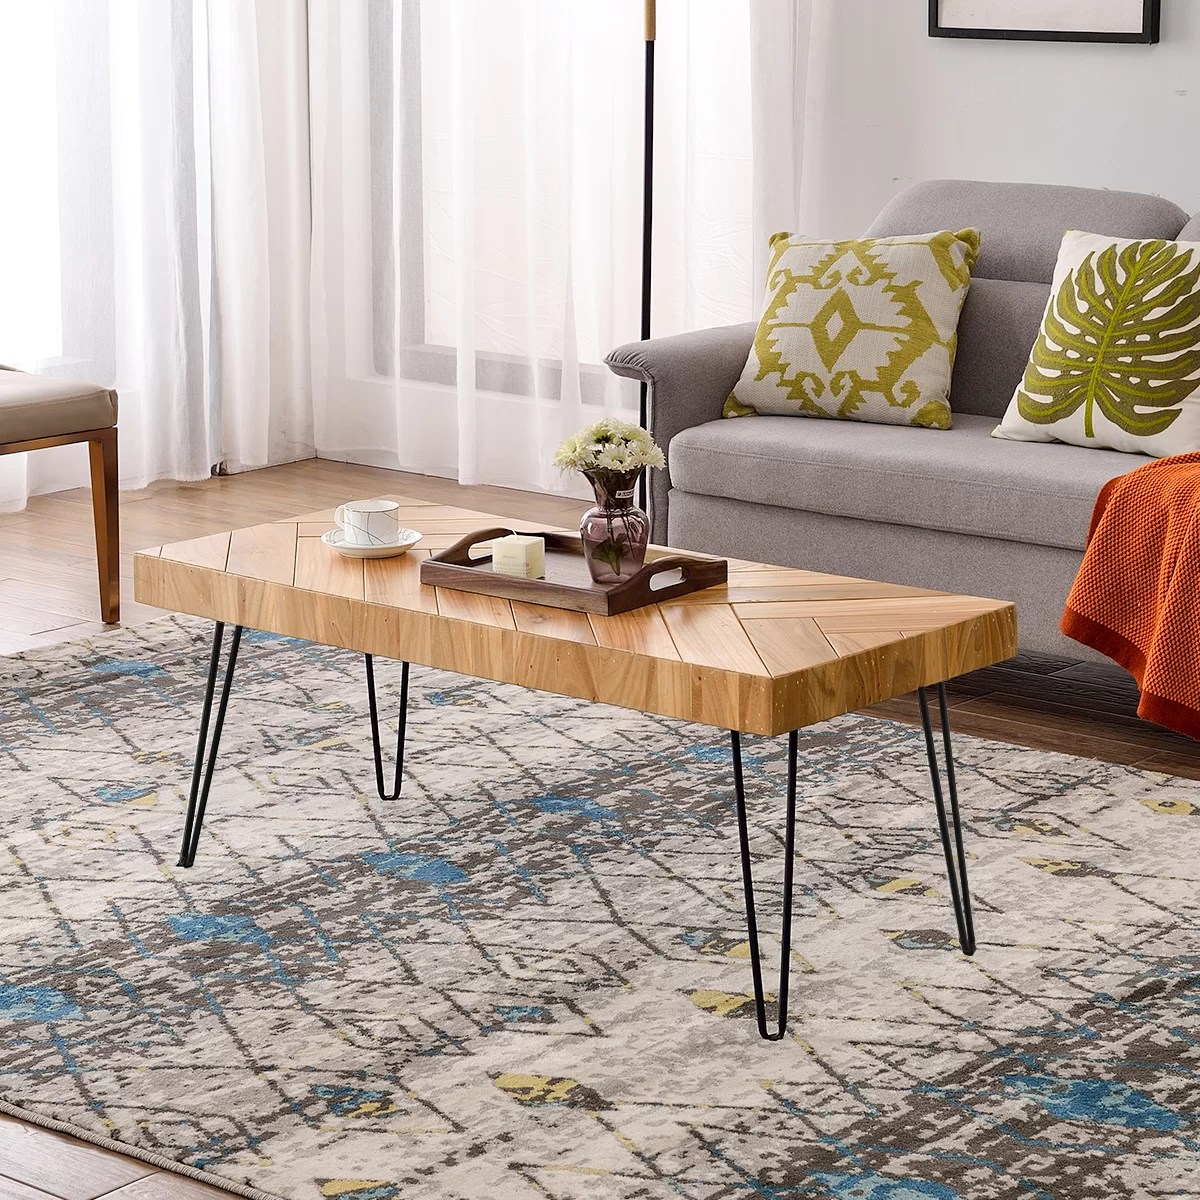 Stunning Side Table In Solid Hardwood Modern Design With Steel Hairpin Legs